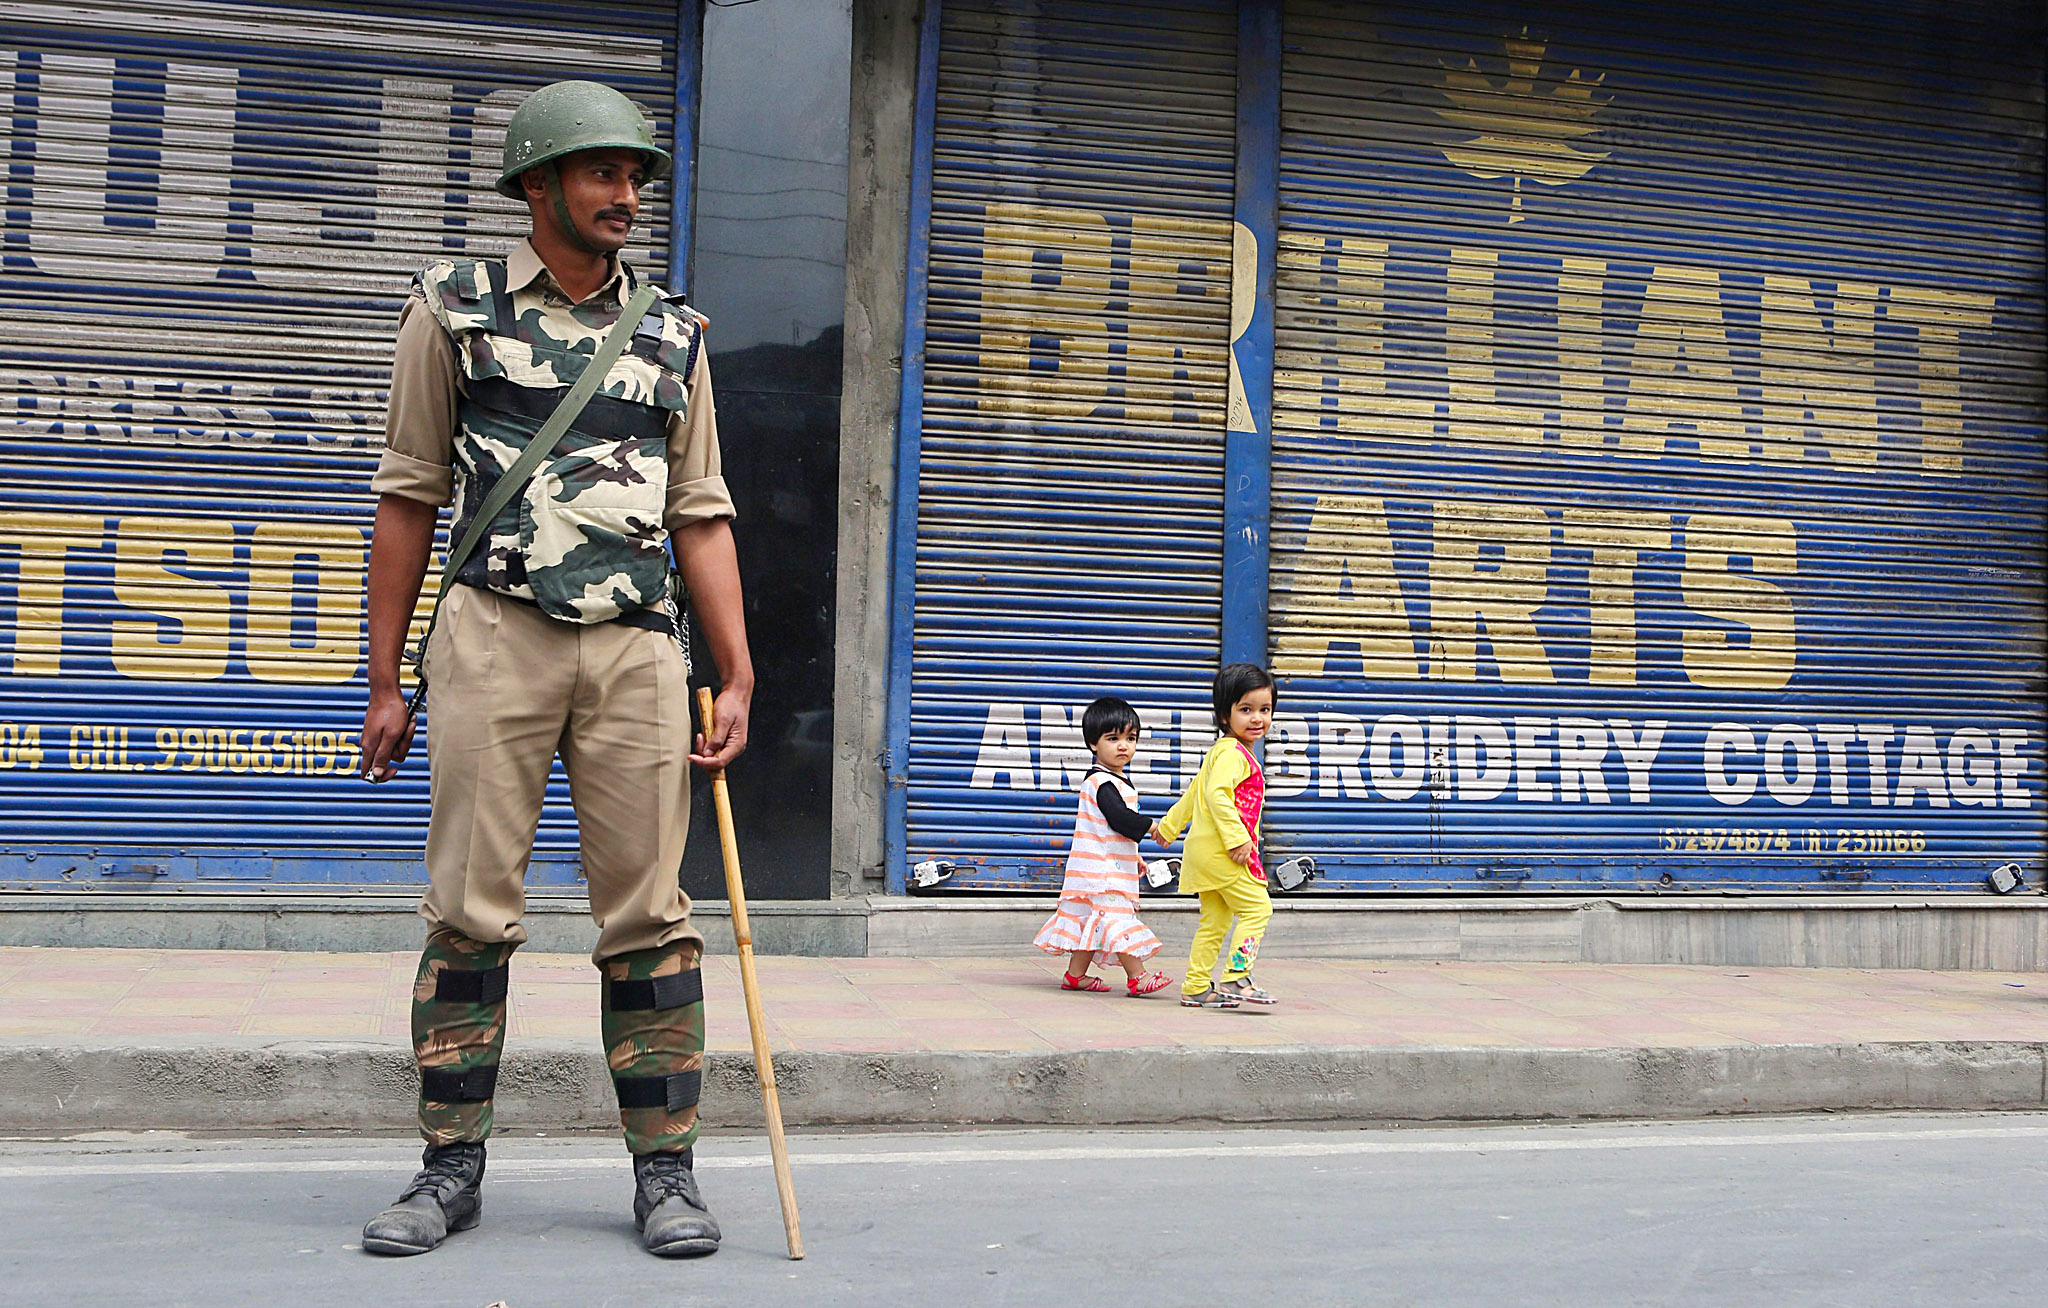 Shutdown in Srinagar...epa04273978 Kashmiri children walk past as an Indian paramilitary soldier standing guard in front of closed shops during a shutdown in Srinagar, the summer capital of Indian Kashmir, 23 June 2014. Indian police detained Muhammad Yasin Malik, Chairman of Jammu and Kashmir Liberation Front (JKLF), along with his supporters in Srinagar. Malik was evading arrest ahead of his Monday's 'Quit Kashmir' programme. Indian Kashmir is observing a complete shutdown in response to the JKLF call against New Delhi's rule. Authorities have deployed contingents of police and paramilitary at several places to foil JKLF's protest programme.  EPA/FAROOQ KHAN